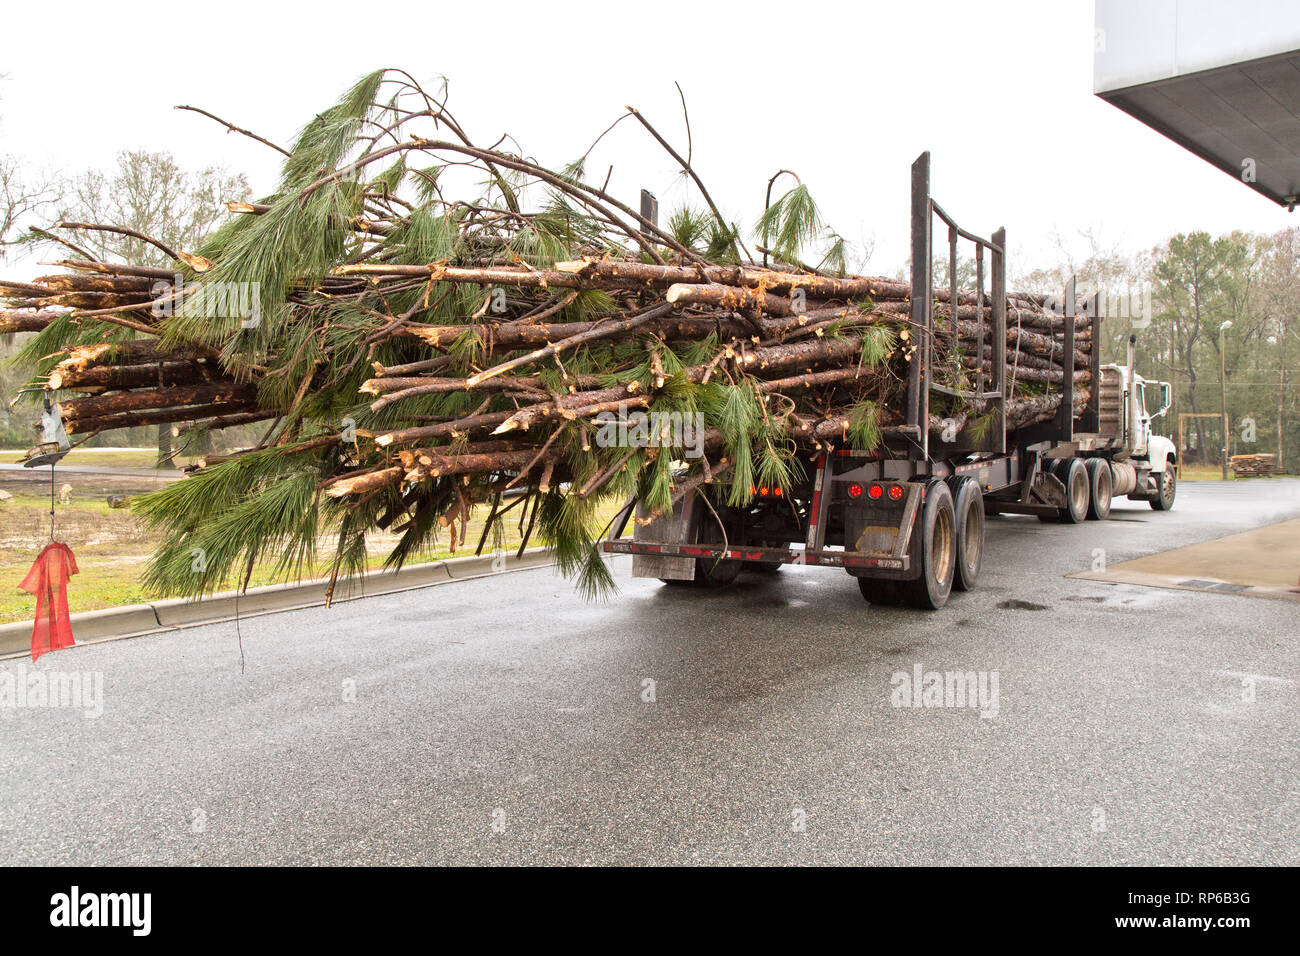 Logging truck hauling freshly harvested Southern Long Leaf Pine logs 'Pinus palustris'  to mill. Stock Photo